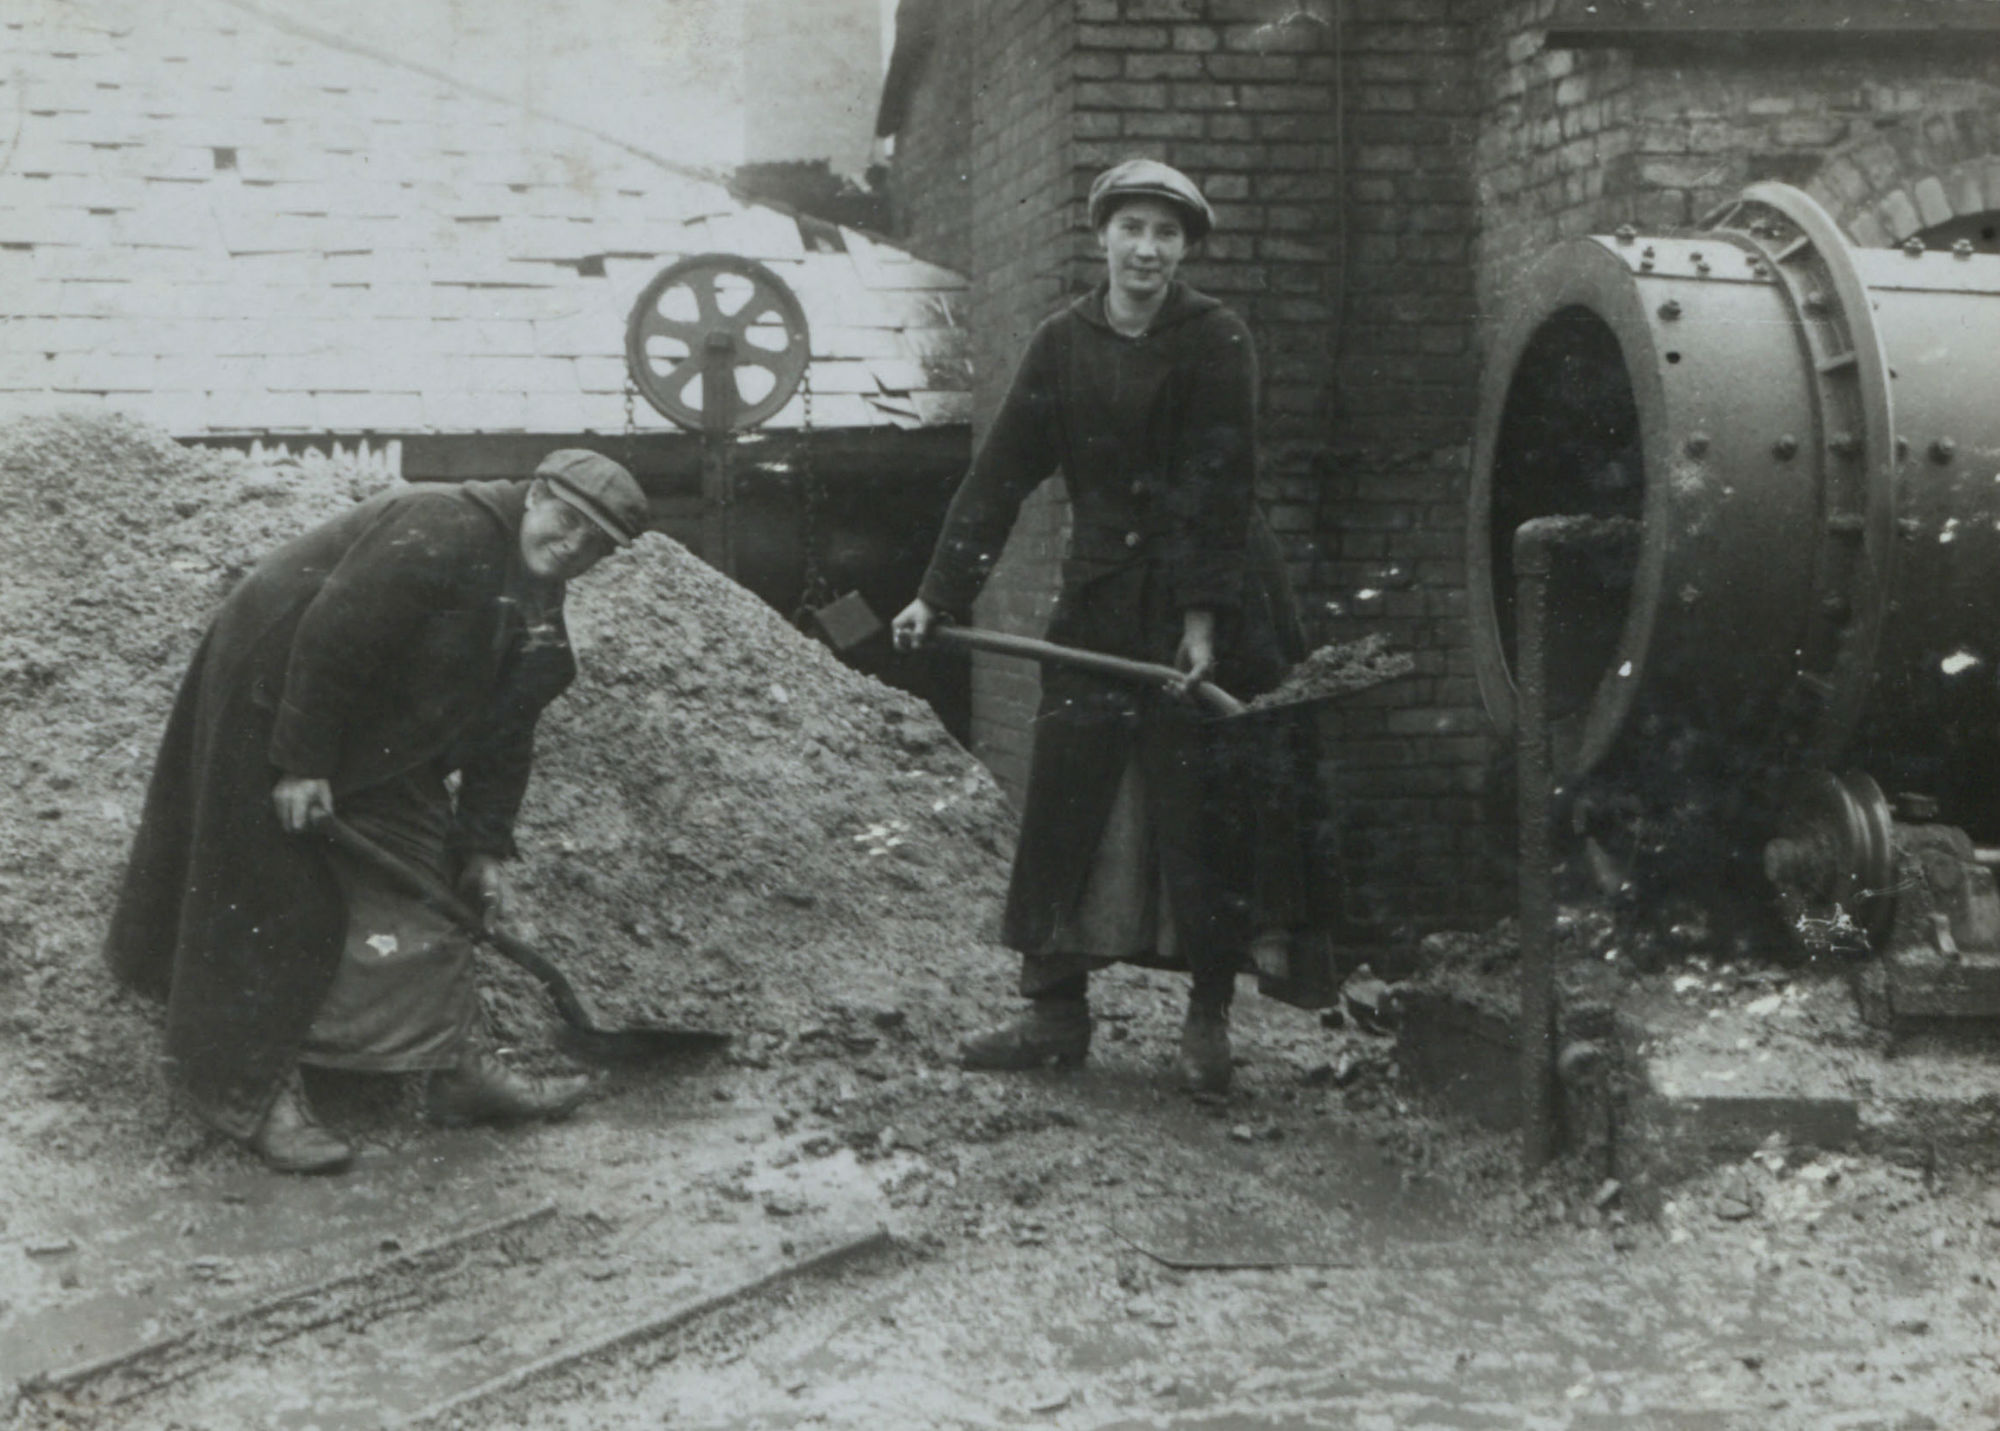 Cement, Chemicals, Bricks and Beer: Women in Industry During the First World War